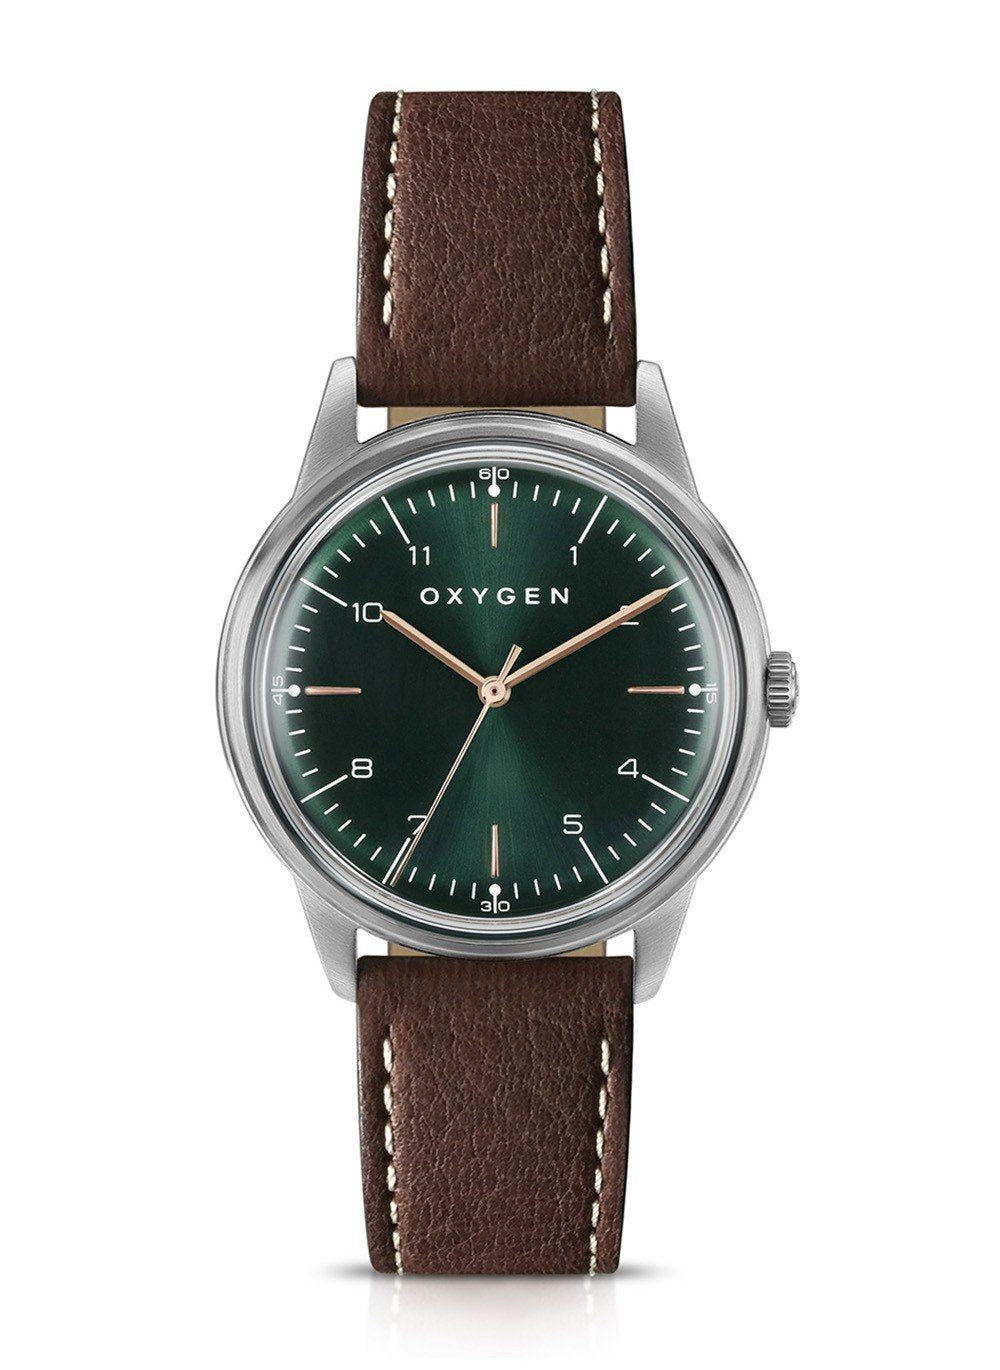 City 36 Helmut - Oxygen Legend Watch